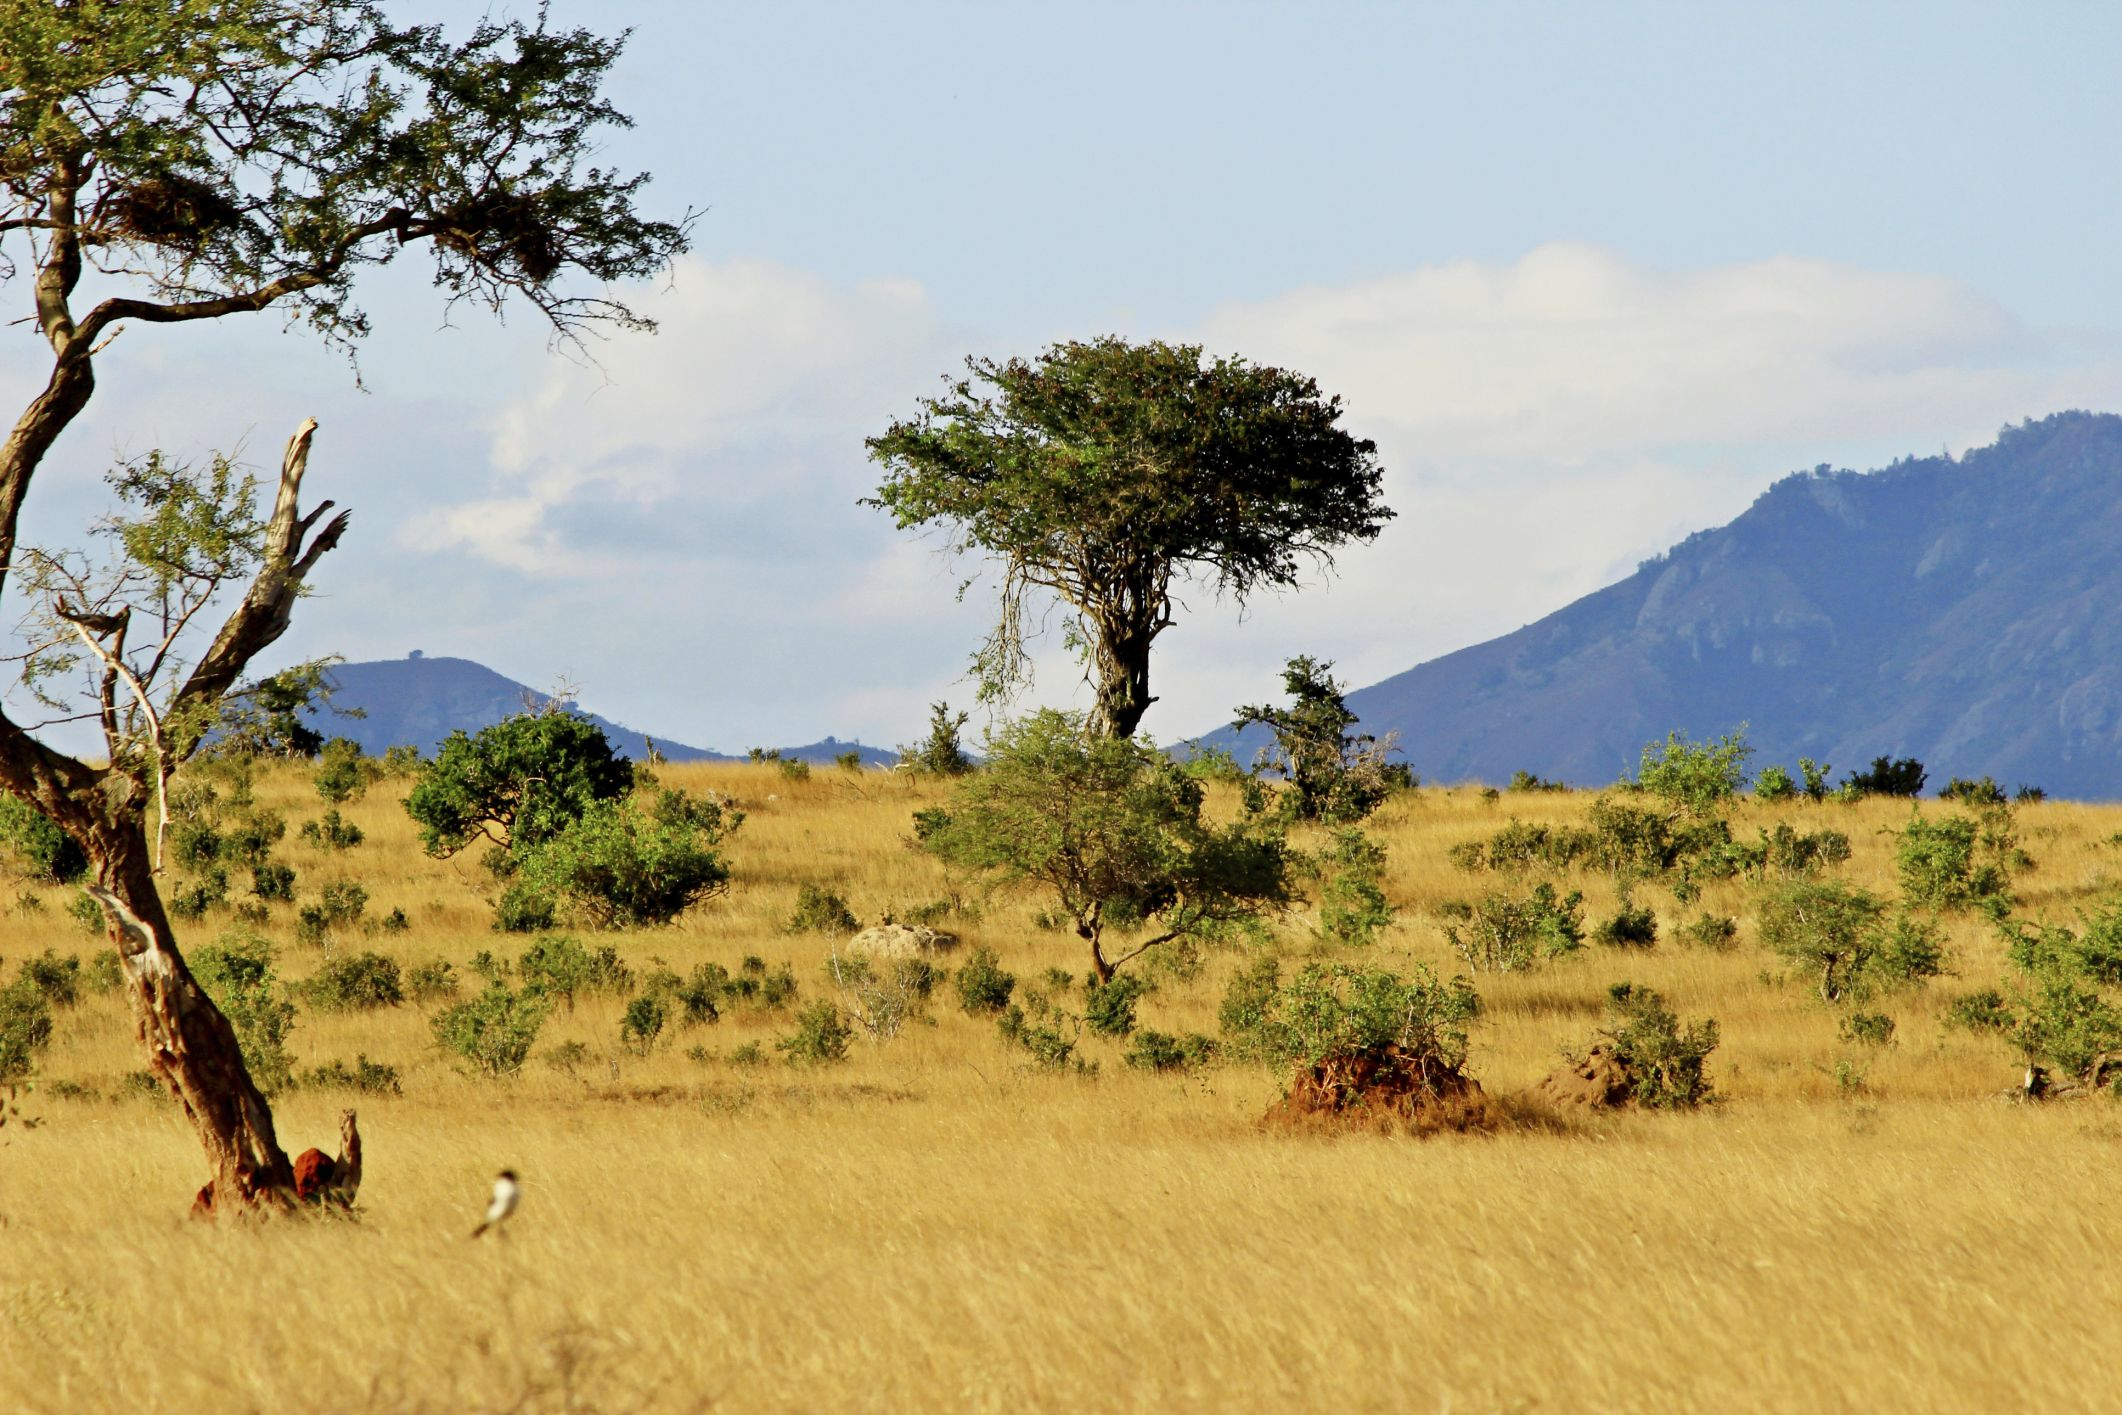 Types of Trees, Grass & Shrubs in the Savanna in 2020